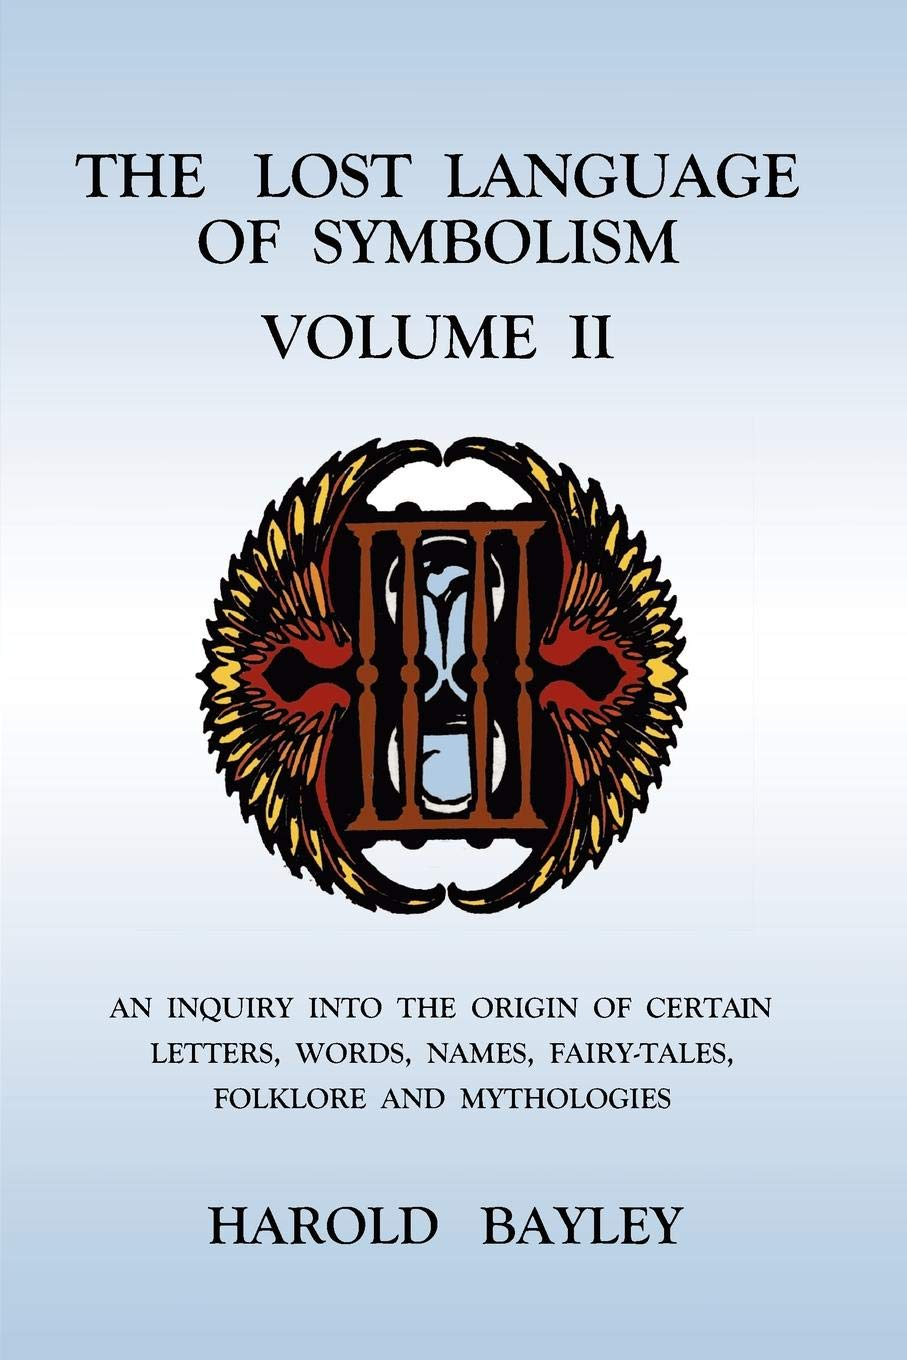 The Lost Language of Symbolism Volume II: An Inquiry into the Origin of Certain Letters, Words, Names, Fairy-Tales, Folklore and Mythologies PDF Text fb2 book